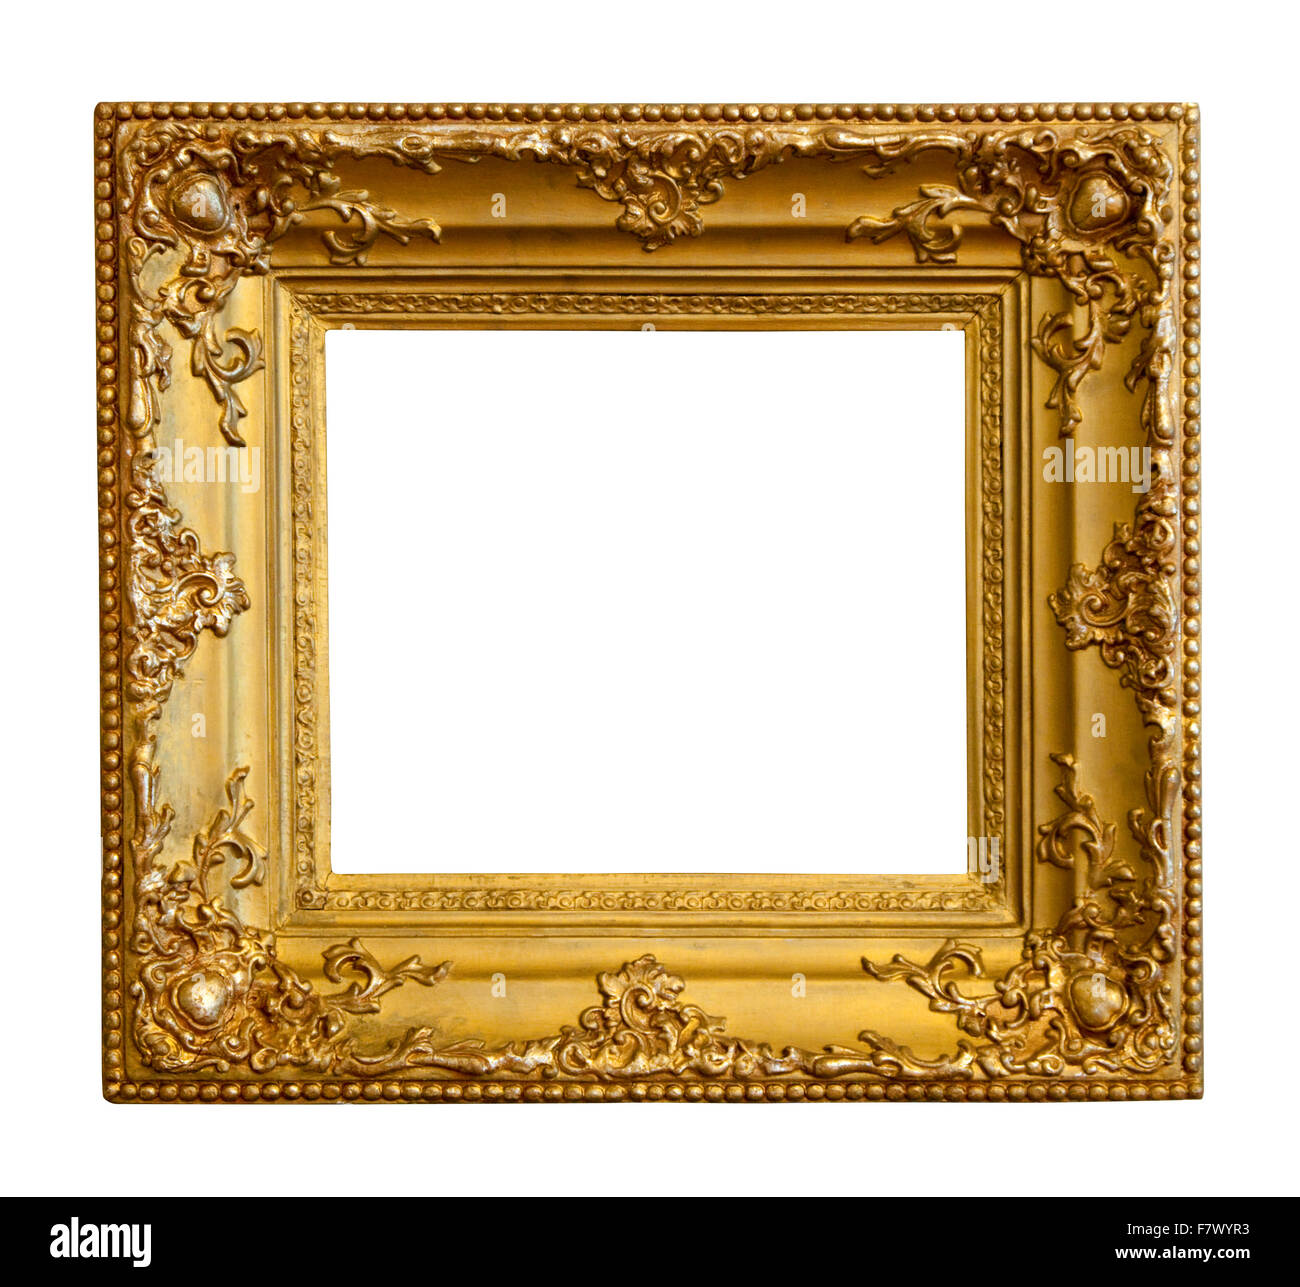 Luxury gilded frame isolated over white background with clipping luxury gilded frame isolated over white background with clipping path jeuxipadfo Gallery